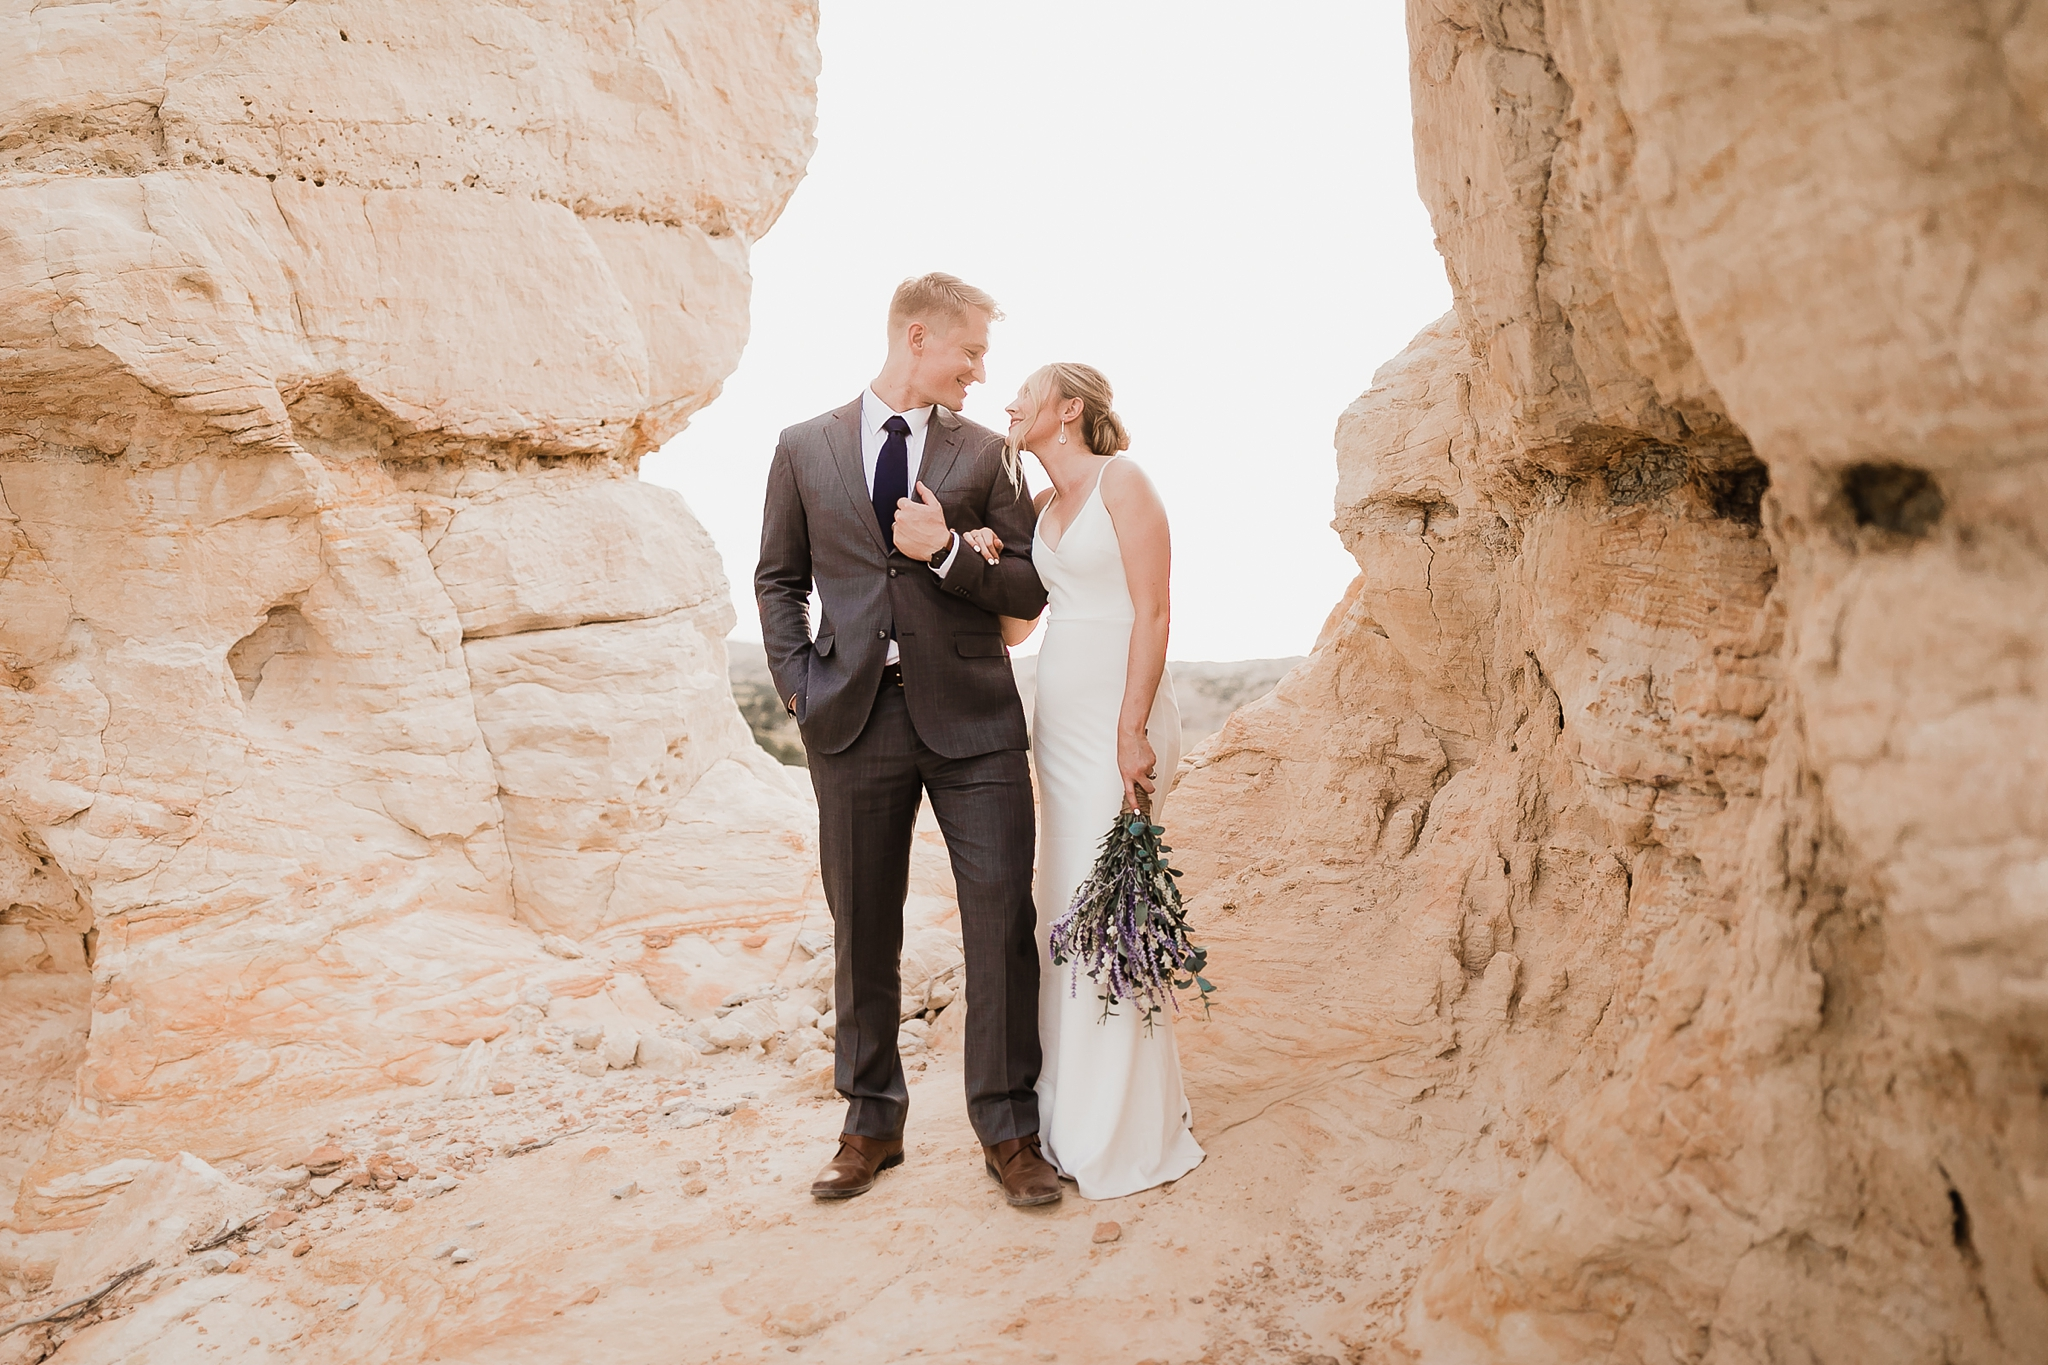 Alicia+lucia+photography+-+albuquerque+wedding+photographer+-+santa+fe+wedding+photography+-+new+mexico+wedding+photographer+-+new+mexico+wedding+-+new+mexico+elopement+-+elopment+-+mountain+elopement_0020.jpg